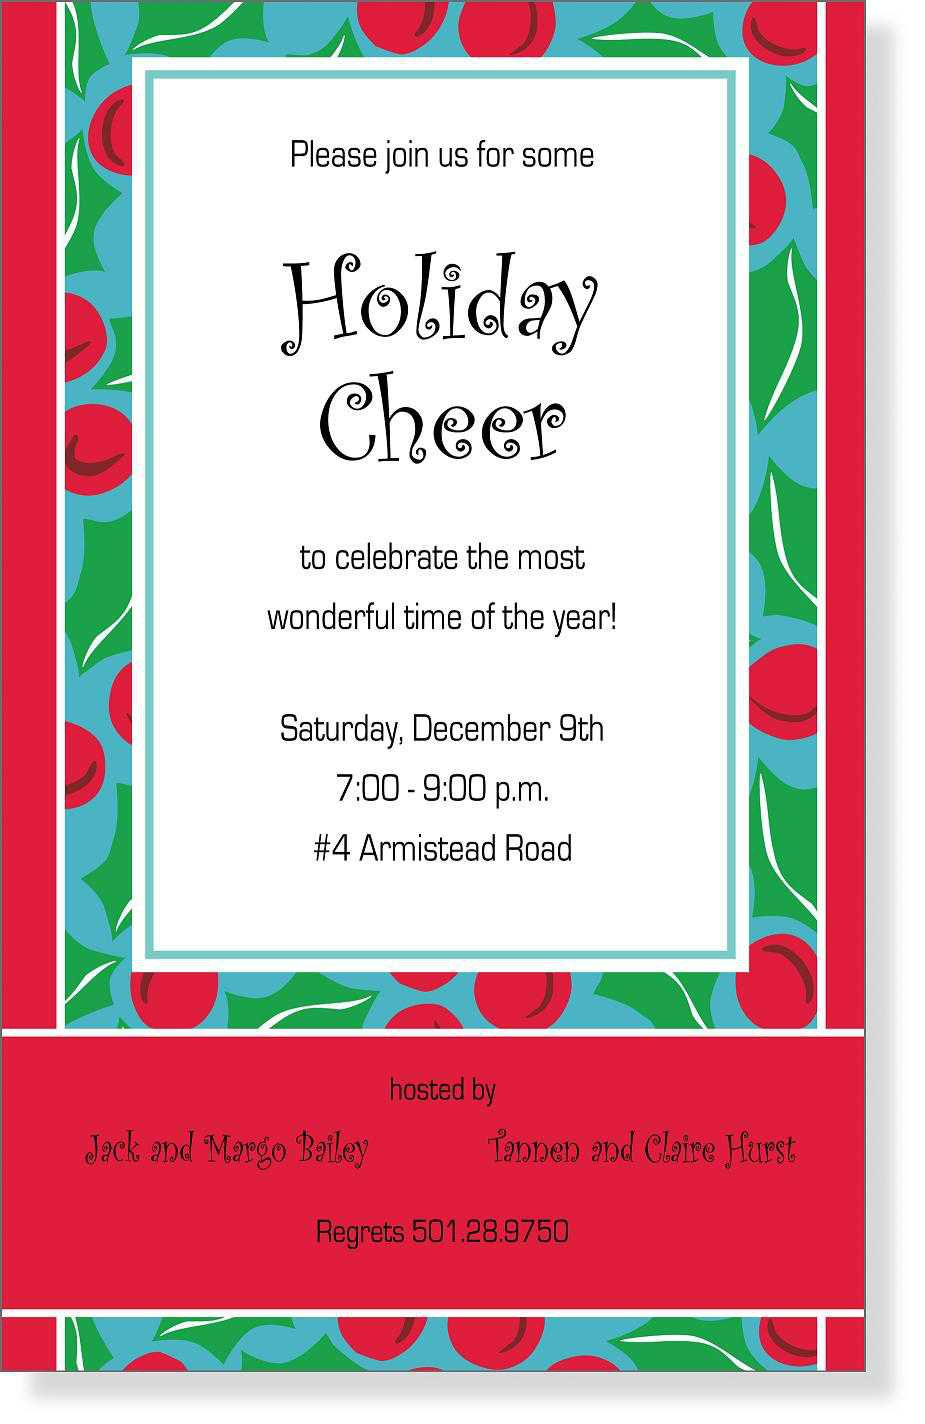 006 Phenomenal Holiday Open House Invitation Template High Resolution  Christma Free Printable Wording IdeaFull